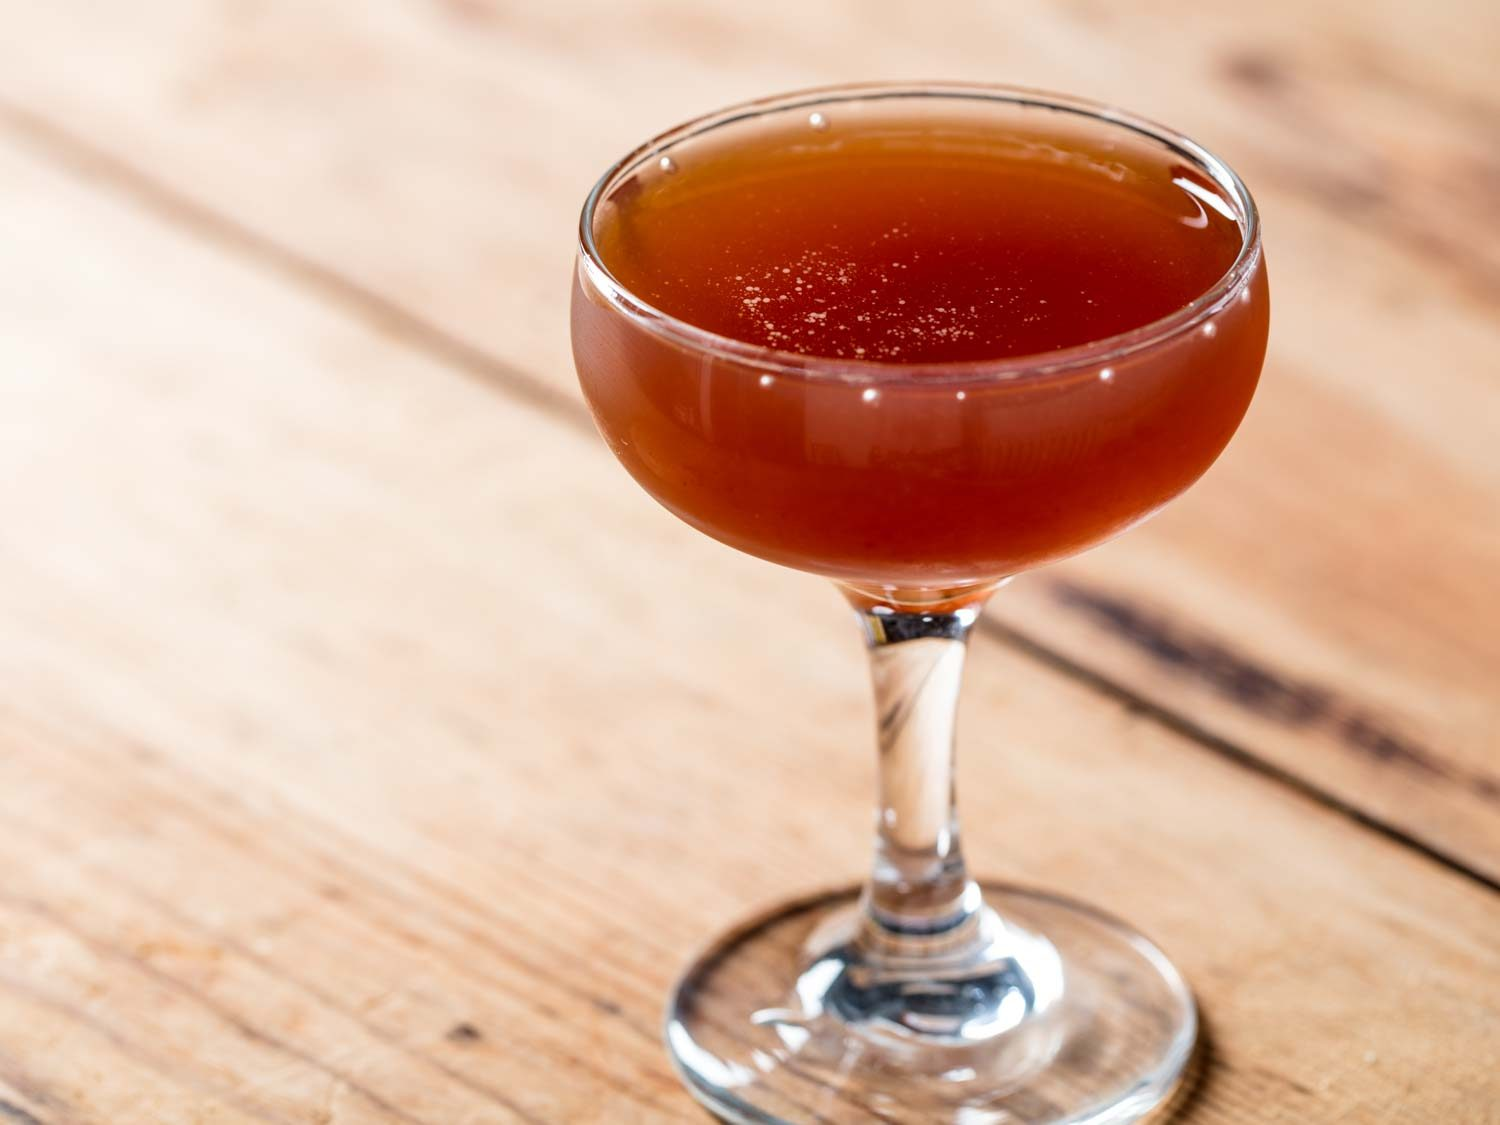 Brown-Butter Old Fashioned